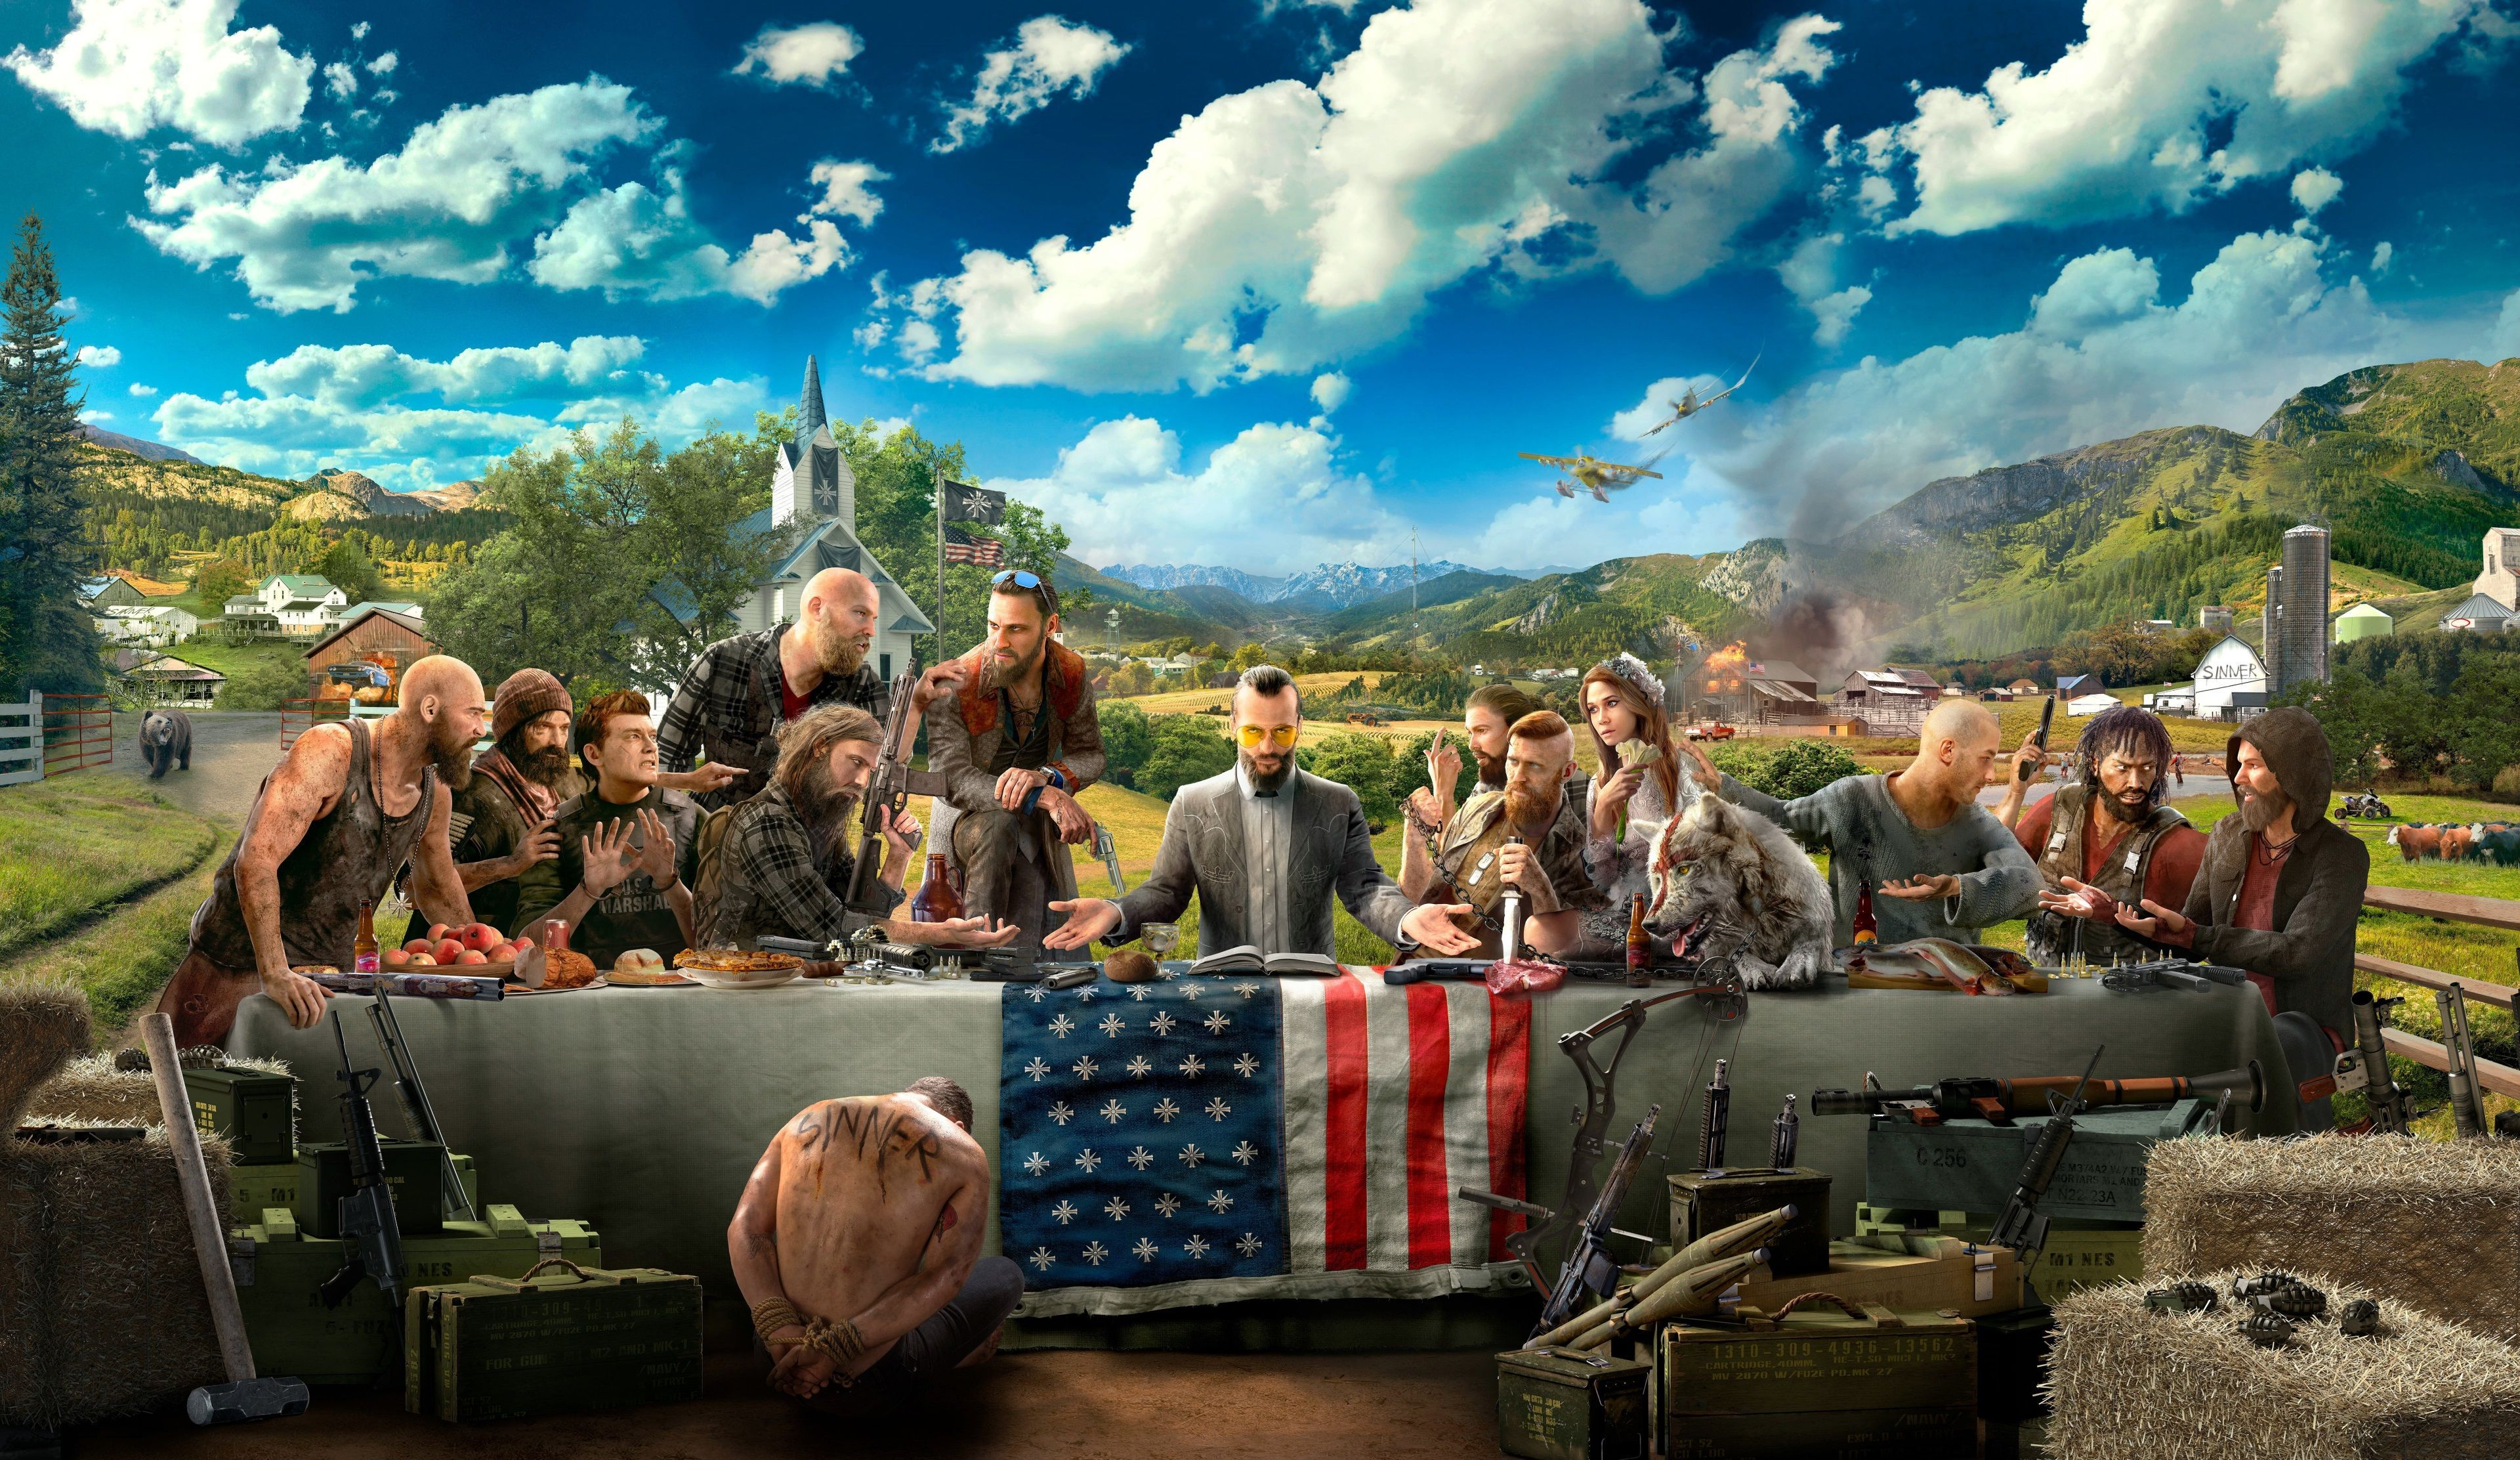 38402224 Far Cry 5 4k Wide Wallpaper Download 4k Samsung Wallpaper Background Images Far Cry 5